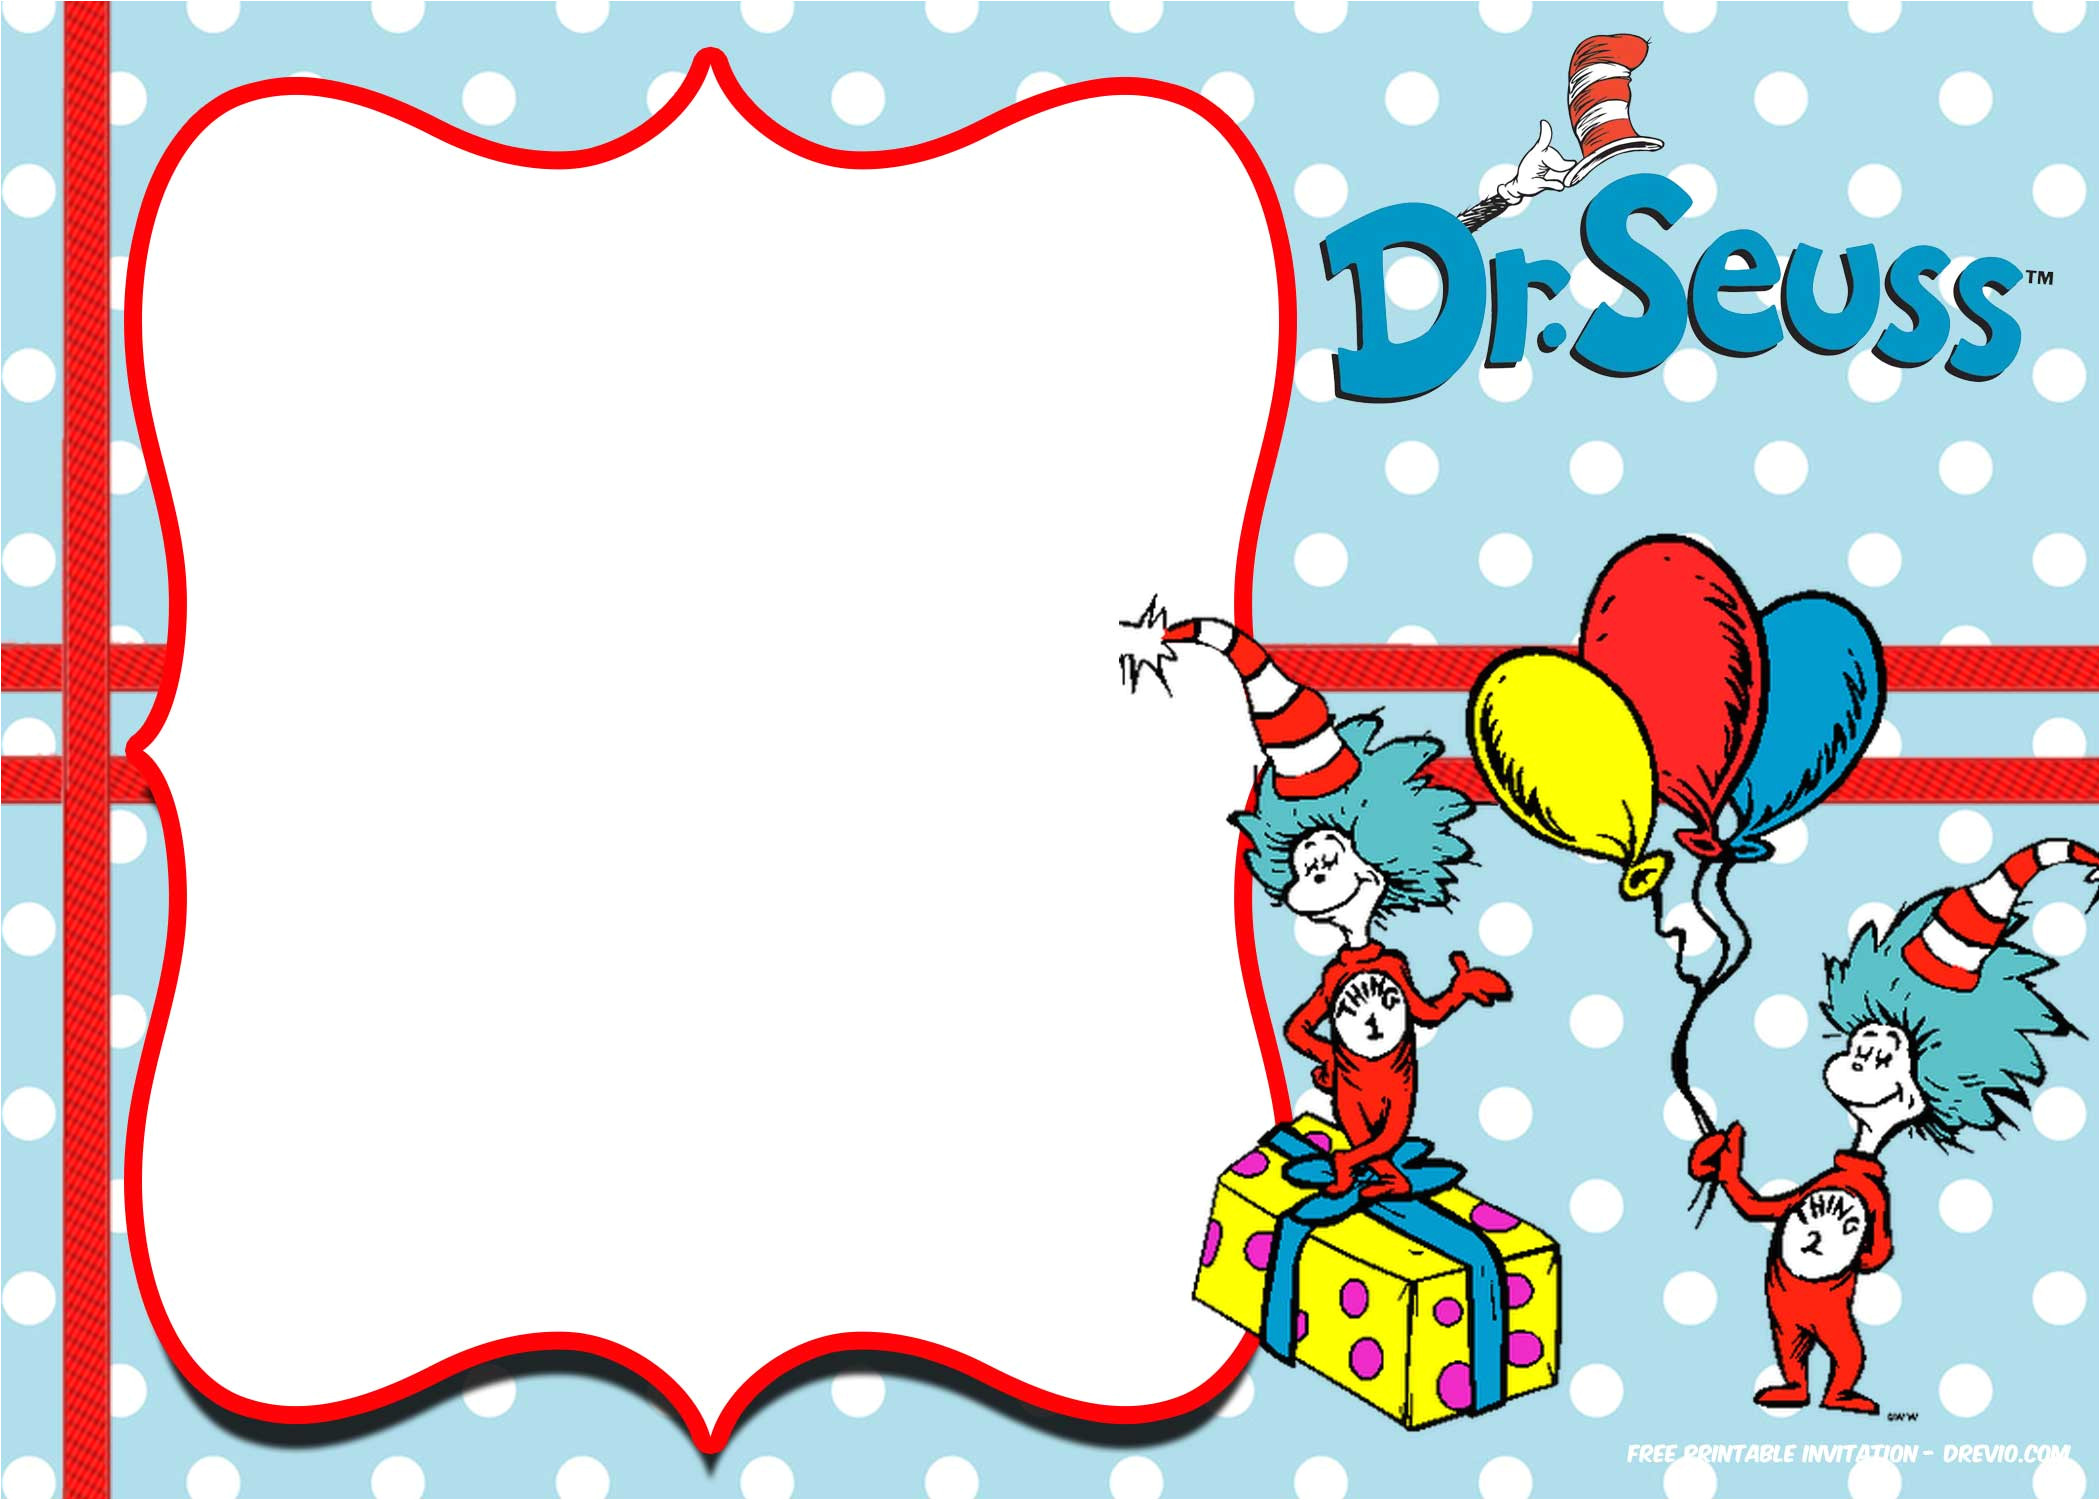 Dr Seuss Birthday Invitation Template Free Dr Seuss Invitation Templates Printable Free